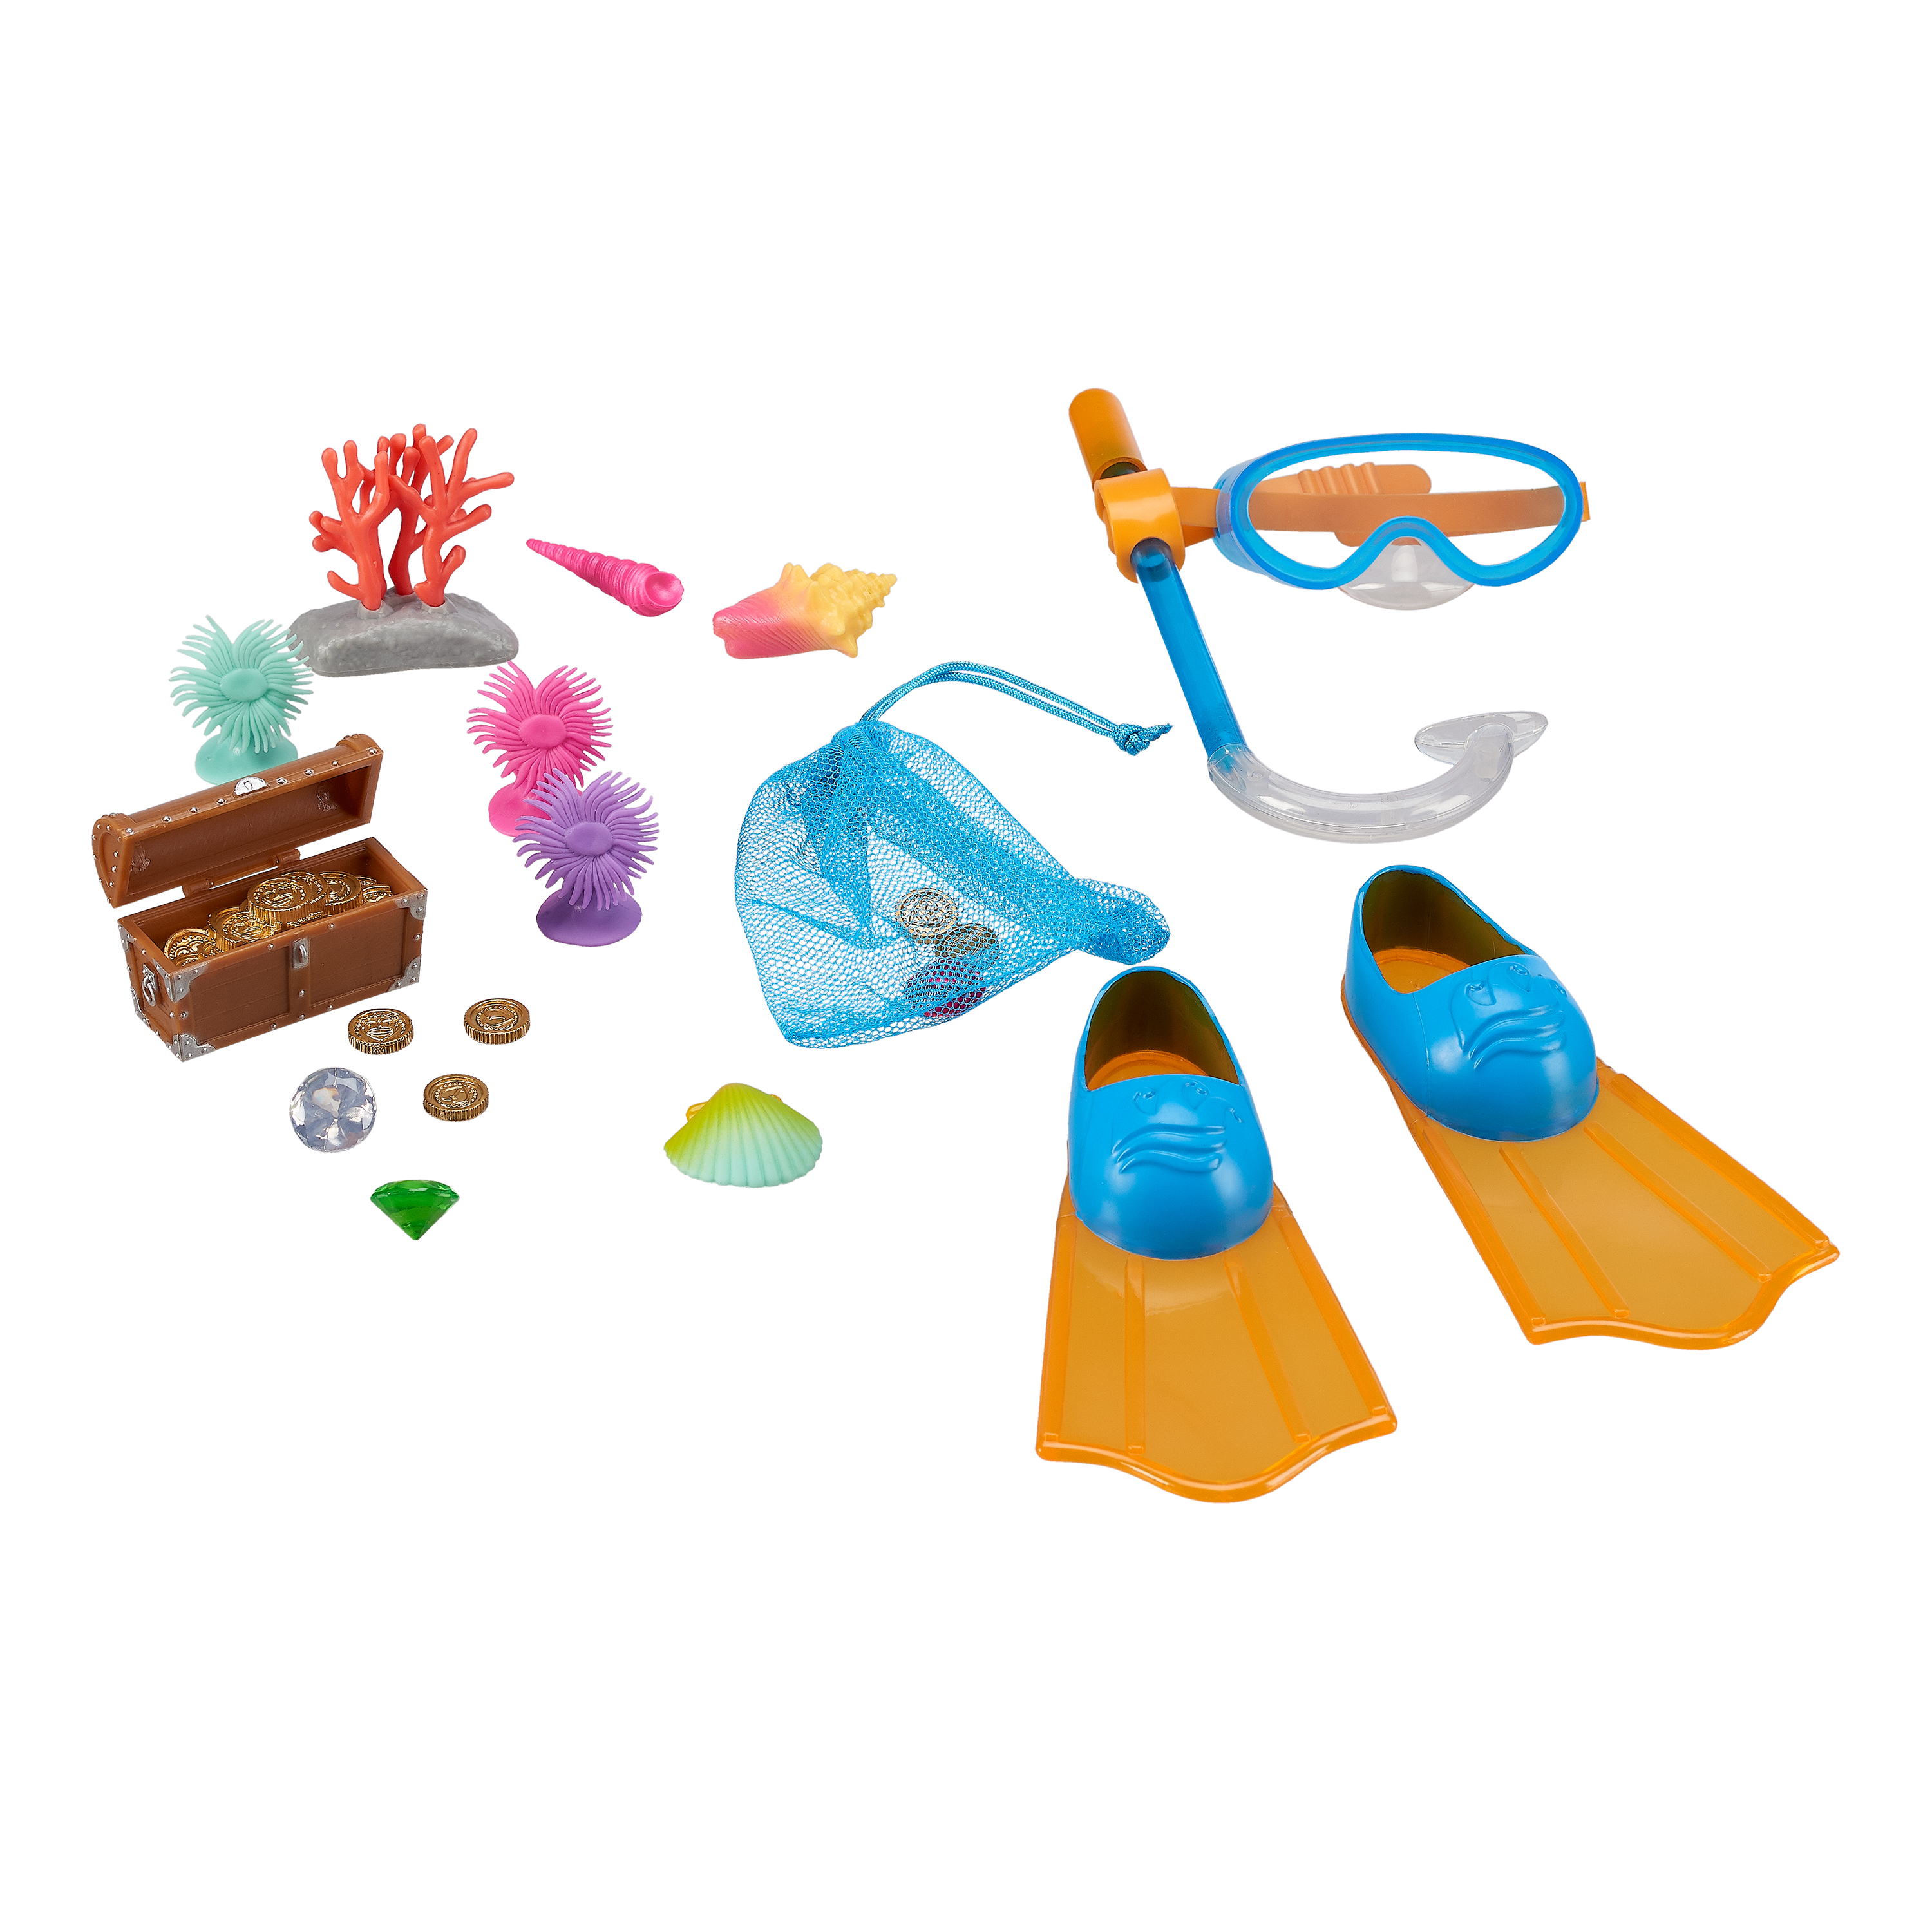 My Life As Snorkel Toy Accessories Play Set for 18-inch Dolls, 20 Pieces